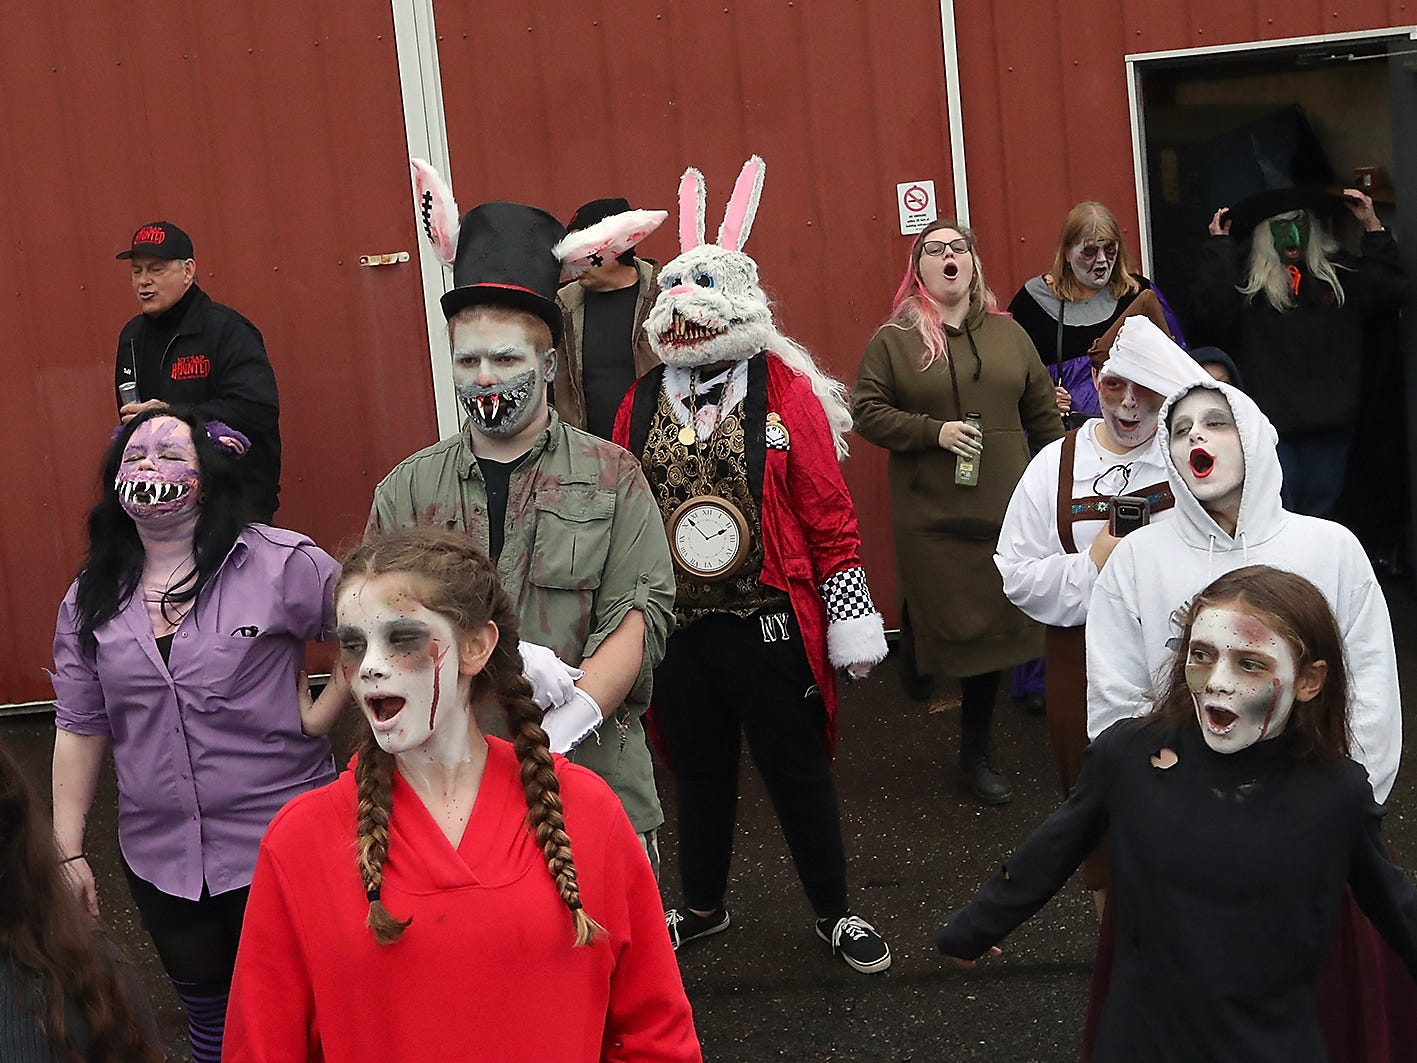 The cast and crew of the Kitsap Haunted Fairgrounds give a howl as they prepare to take their positions for opening night on Friday, October 5, 2018.